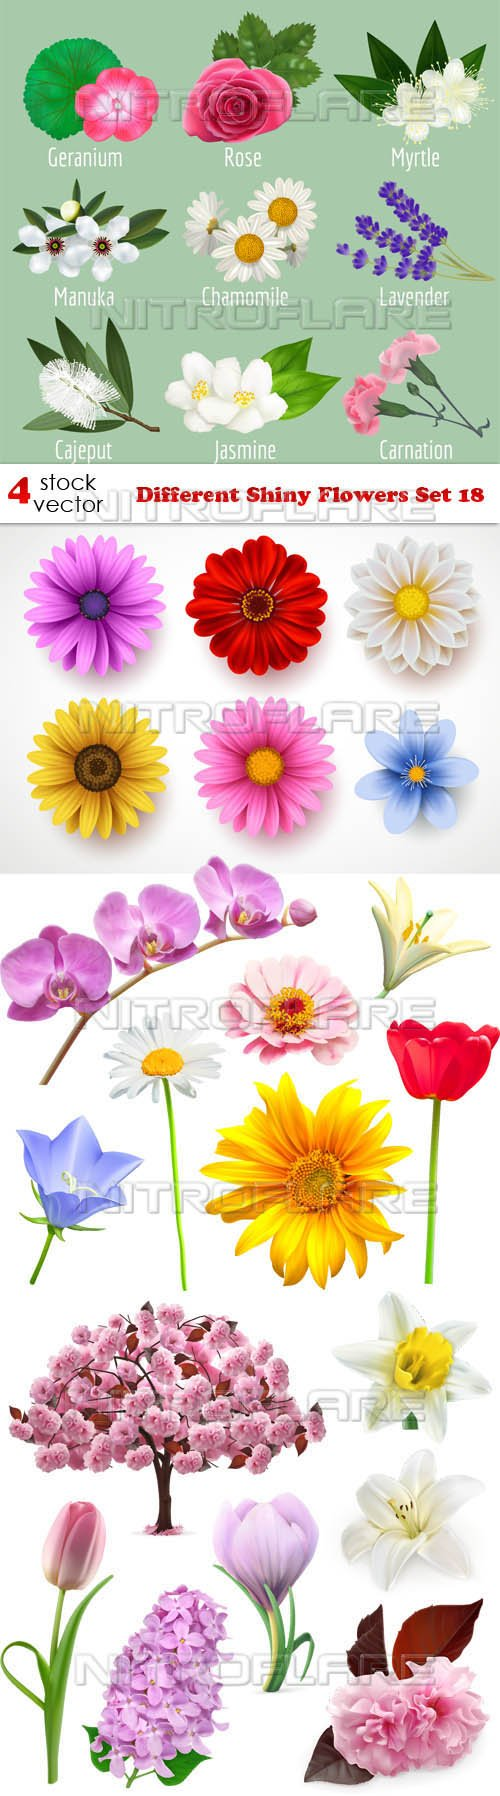 Vectors - Different Shiny Flowers Set 18